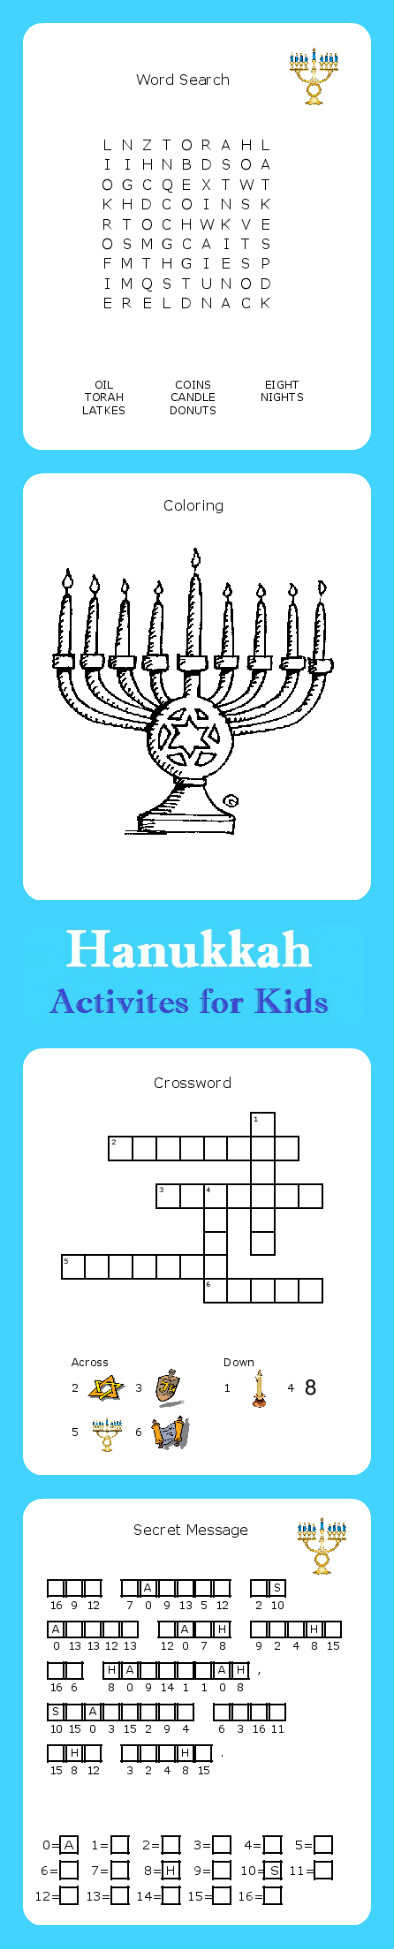 hannukah_stitched_title